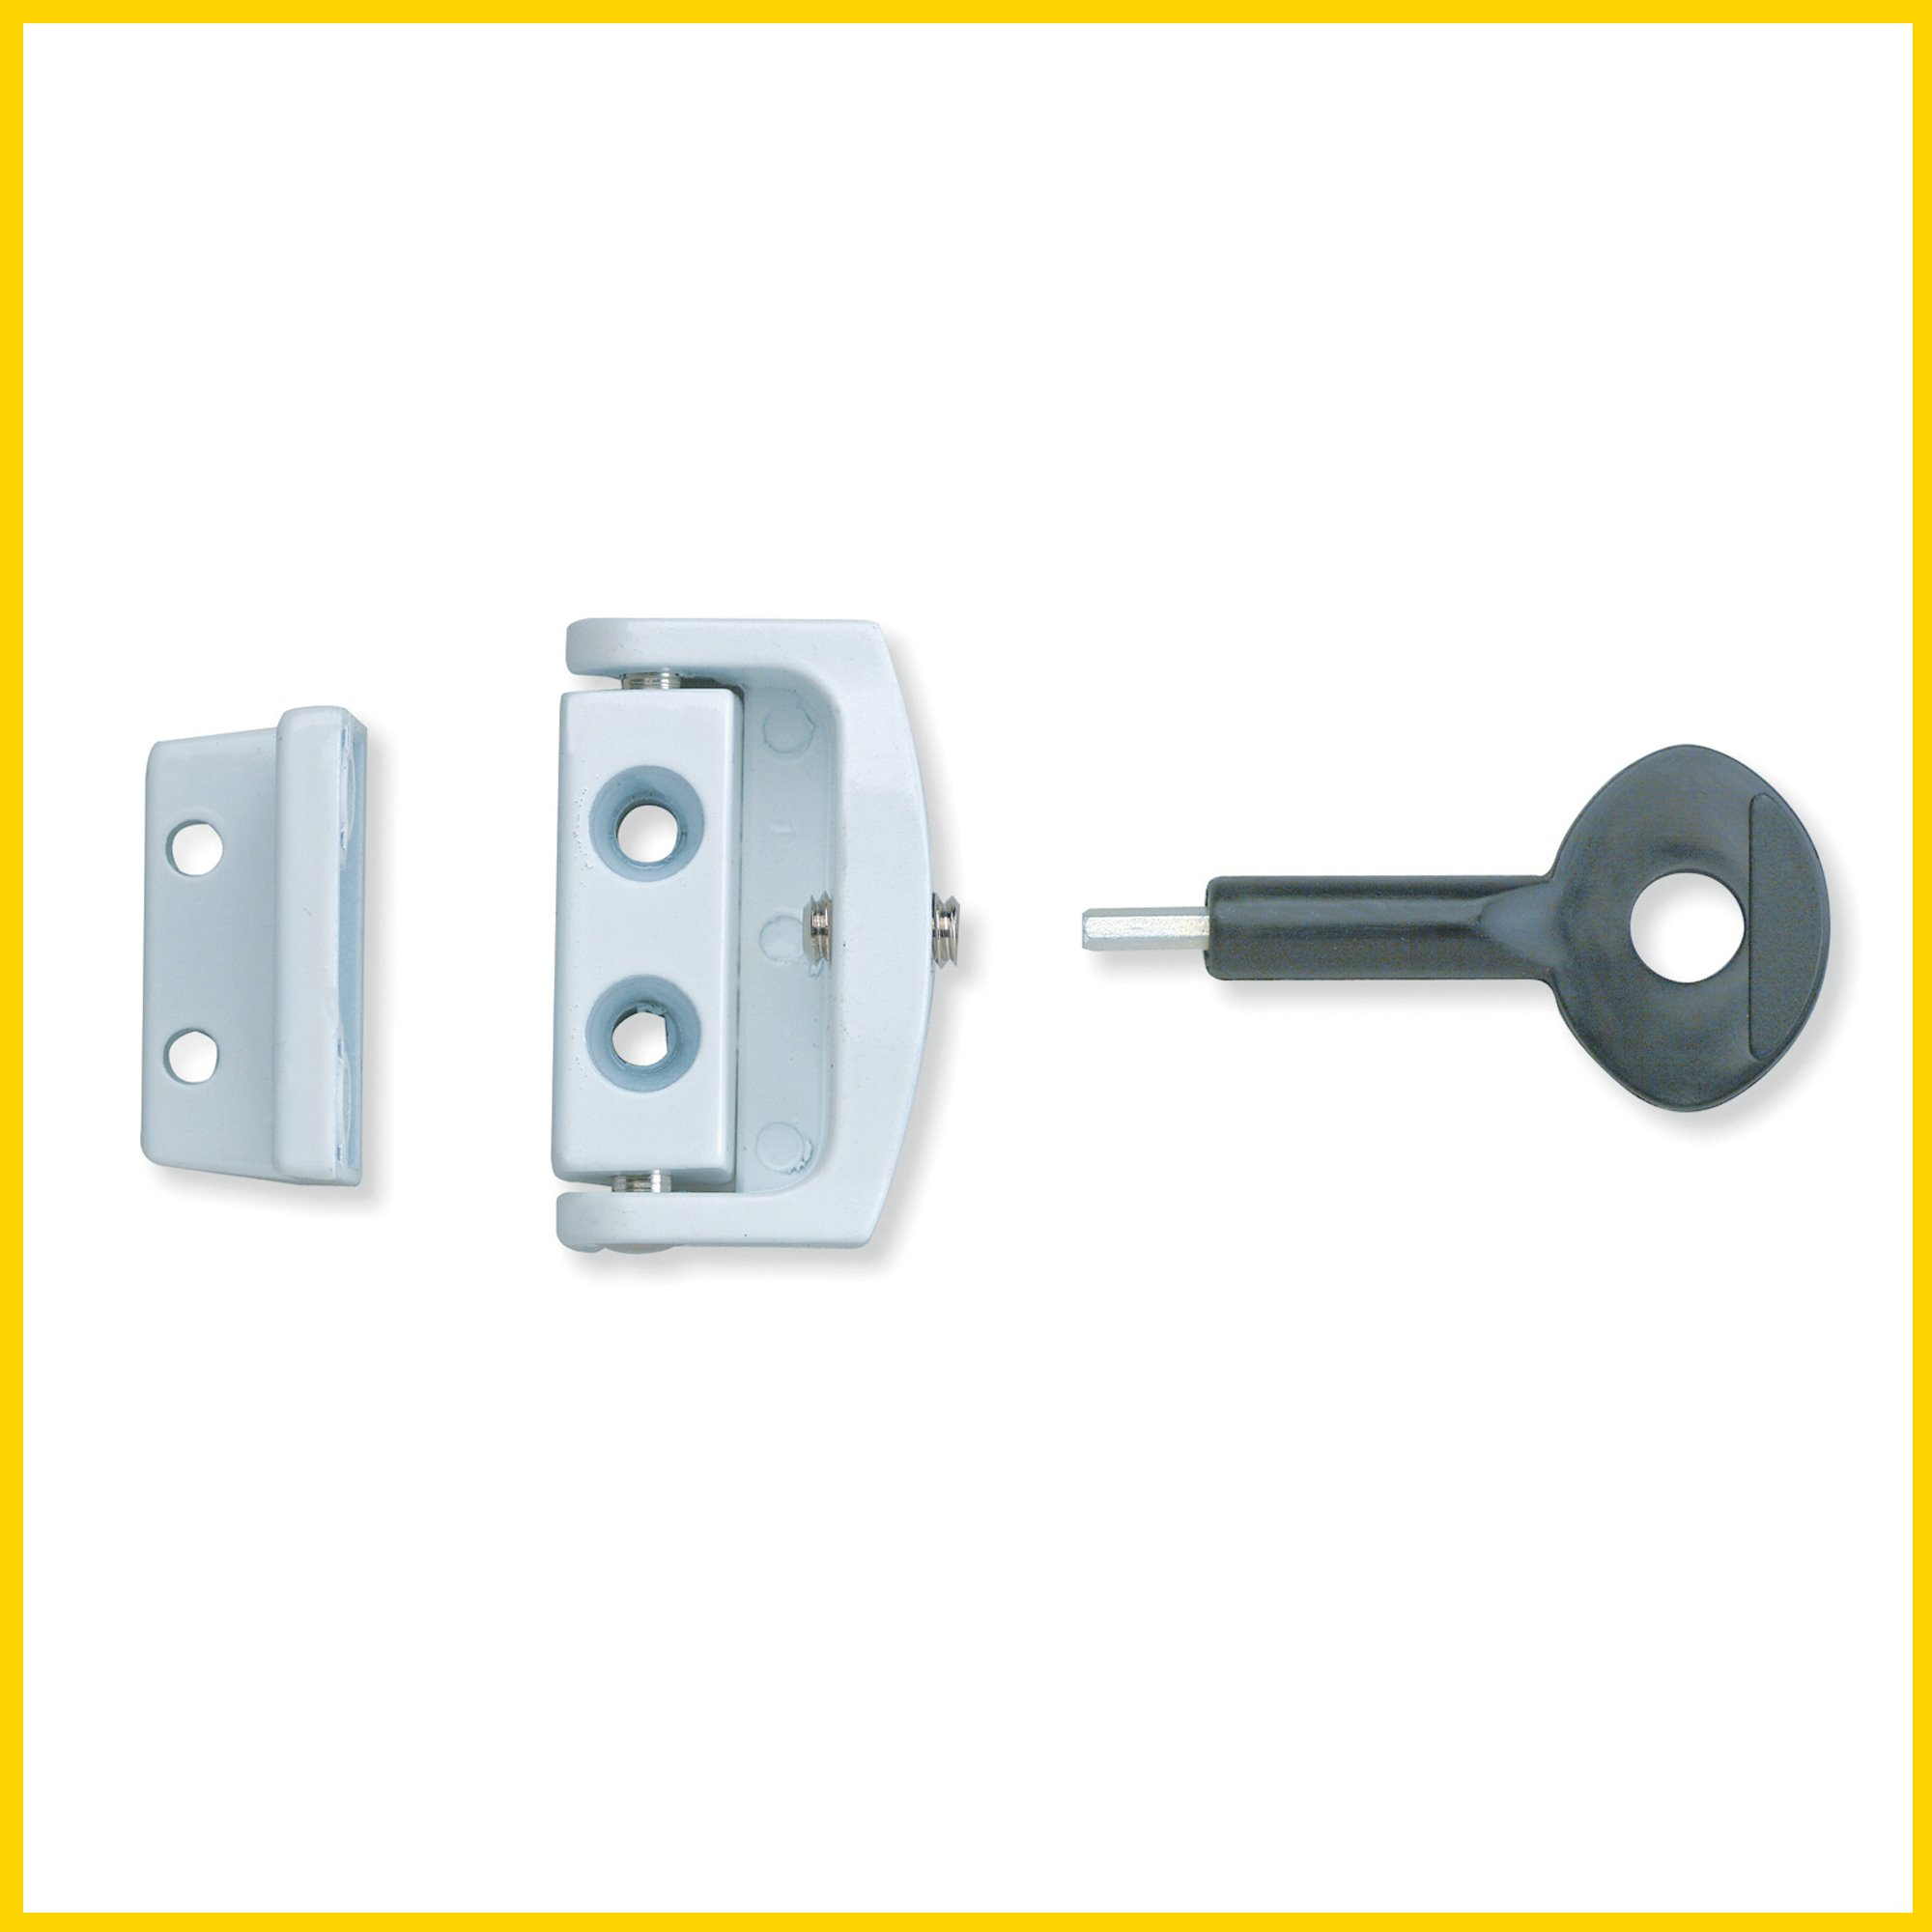 P113 - Toggle Window Lock